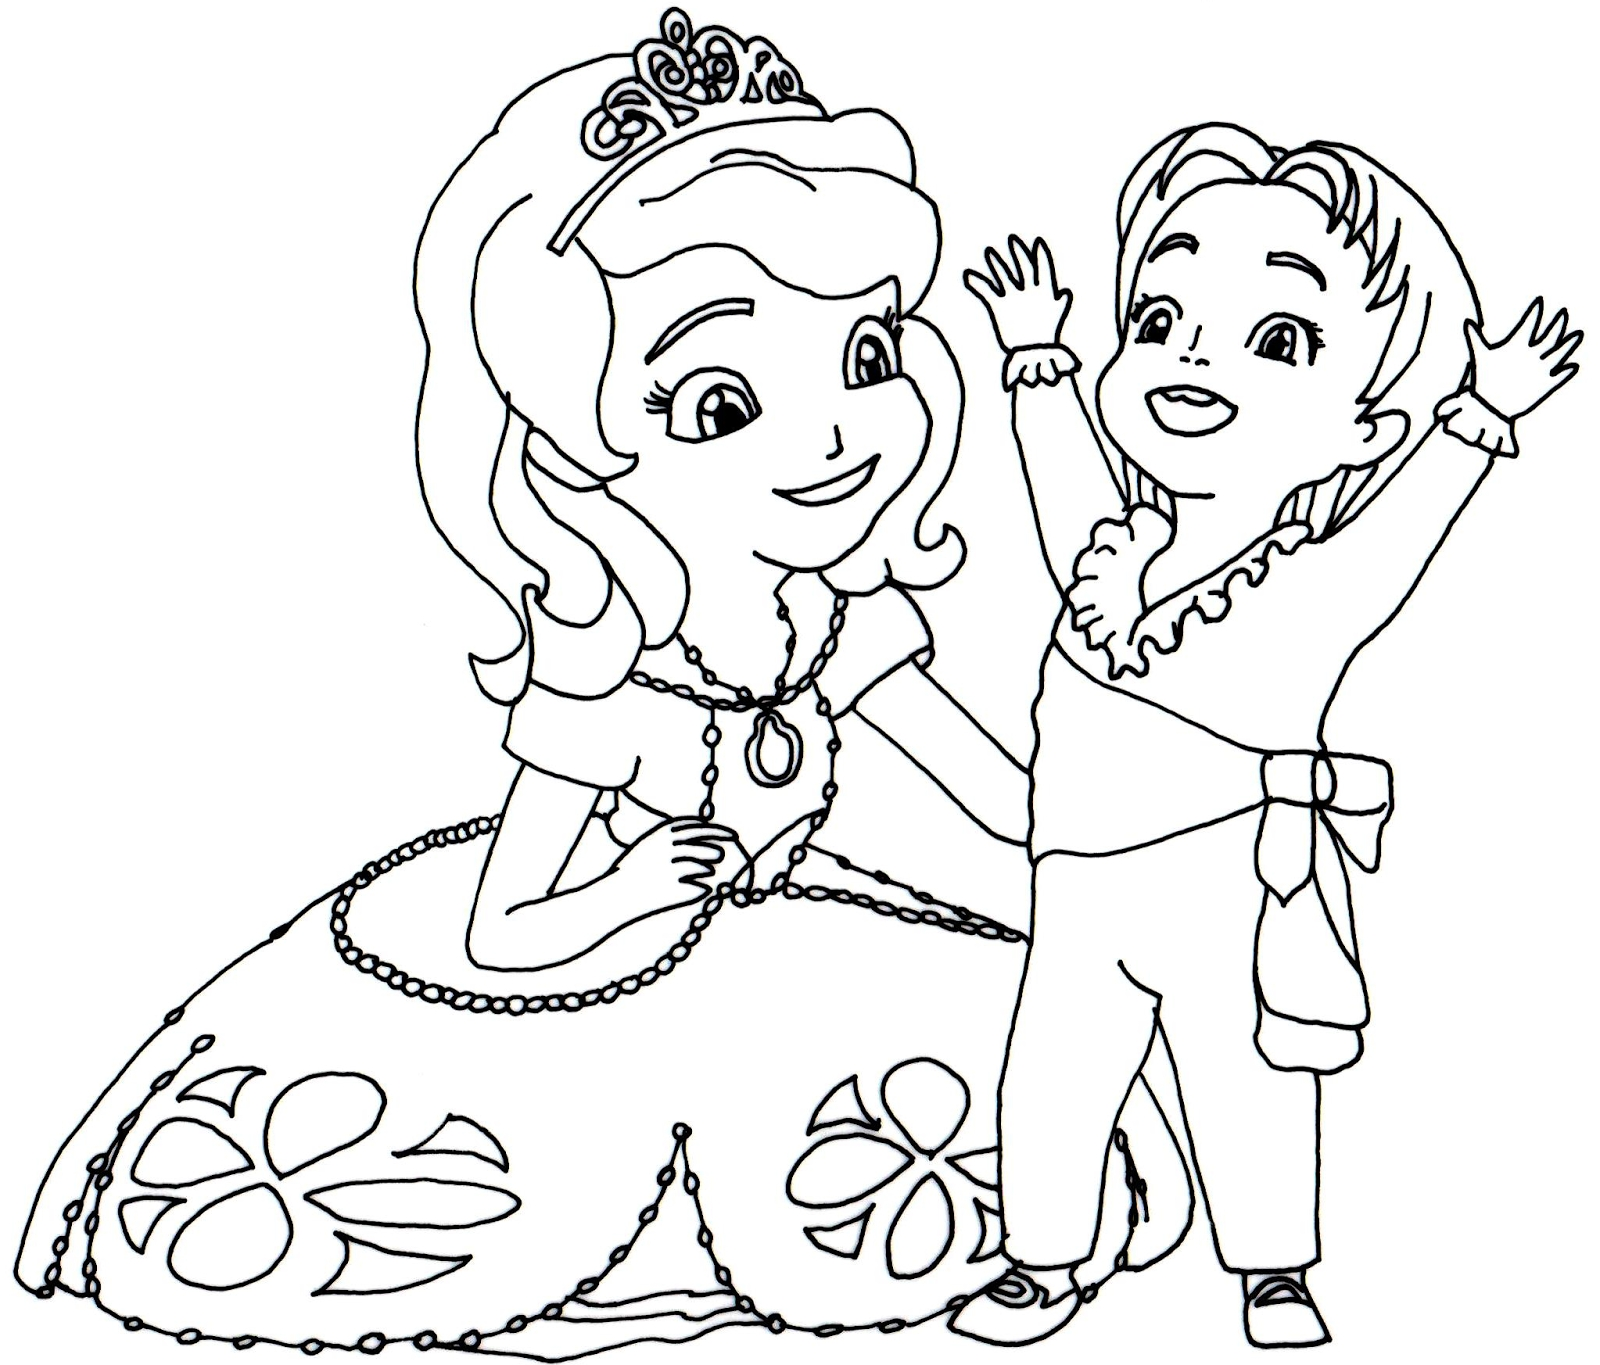 sofia coloring pages - sofia first coloring page with baby